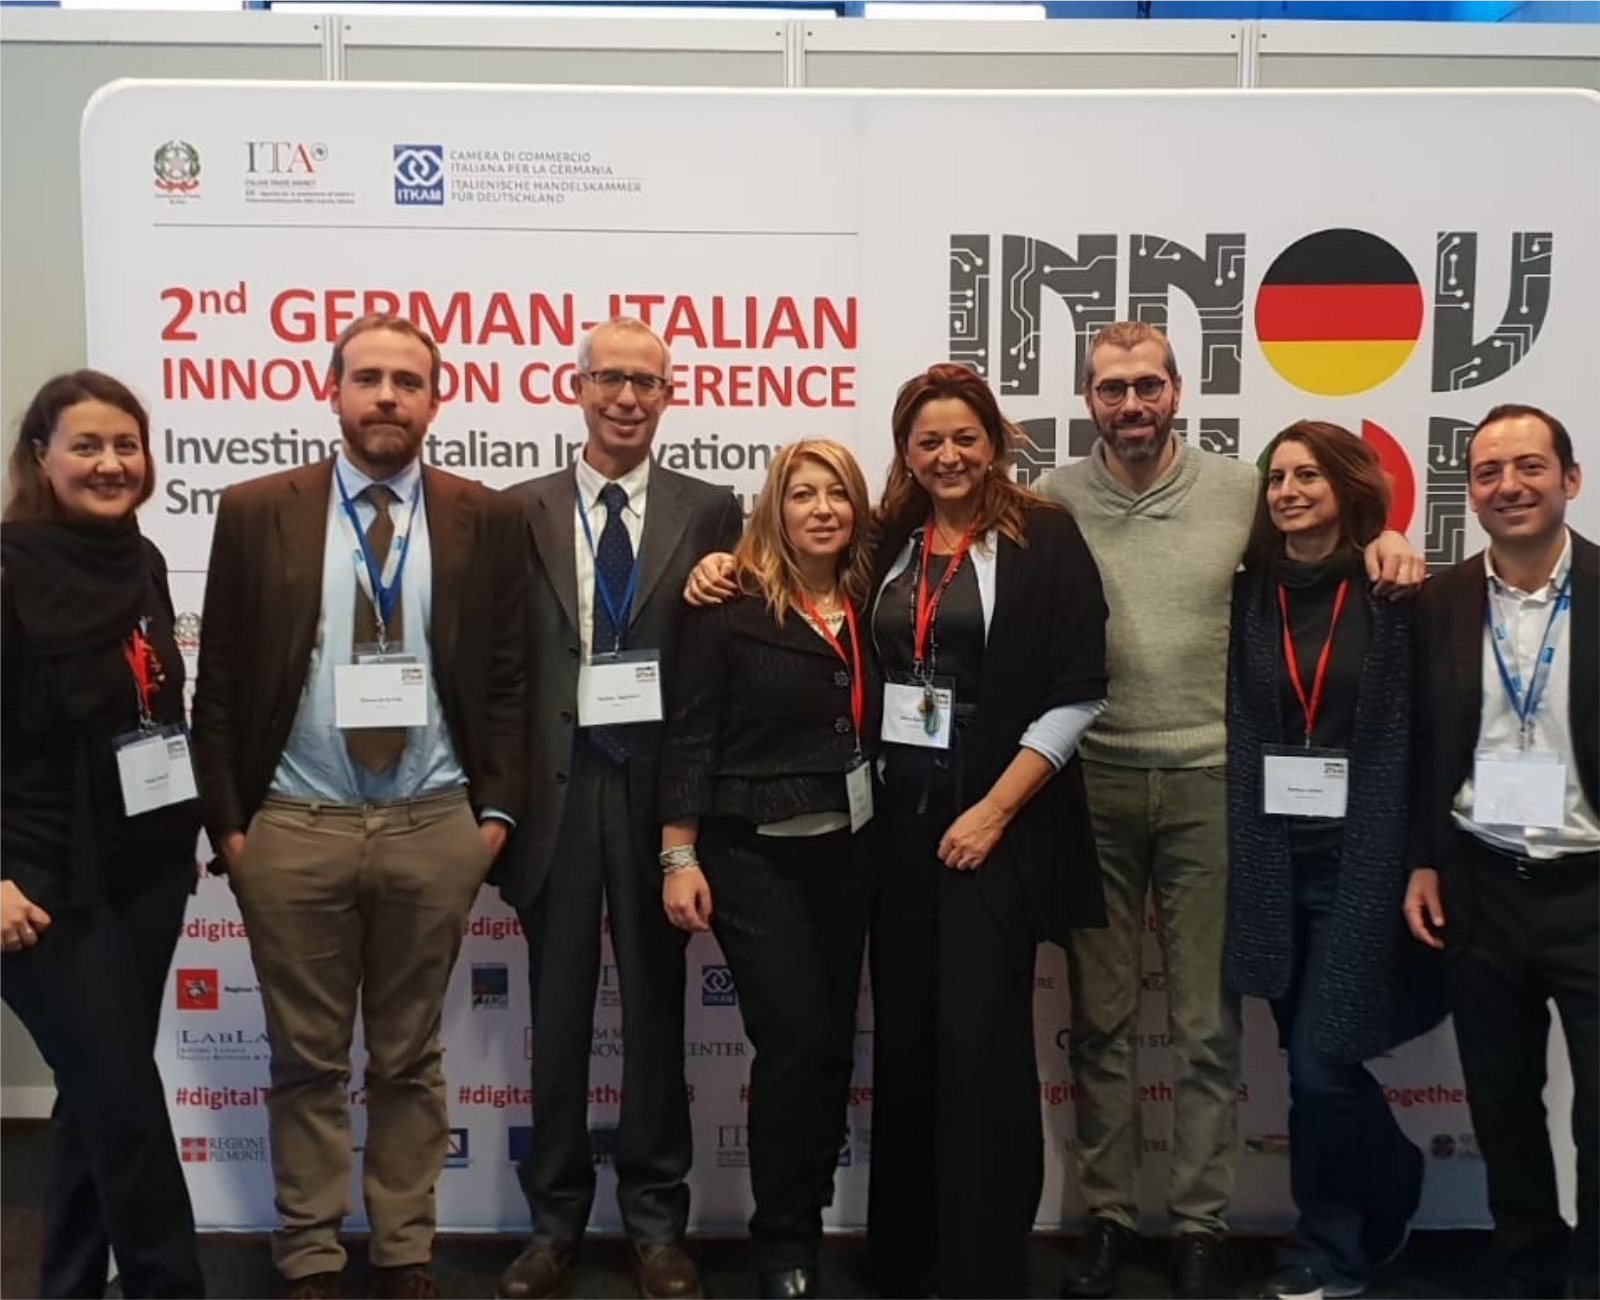 GIFFONI INNOVATION HUB AT THE 2nd EDITION OF THE GERMAN-ITALIAN INNOVATION CONFERENCE